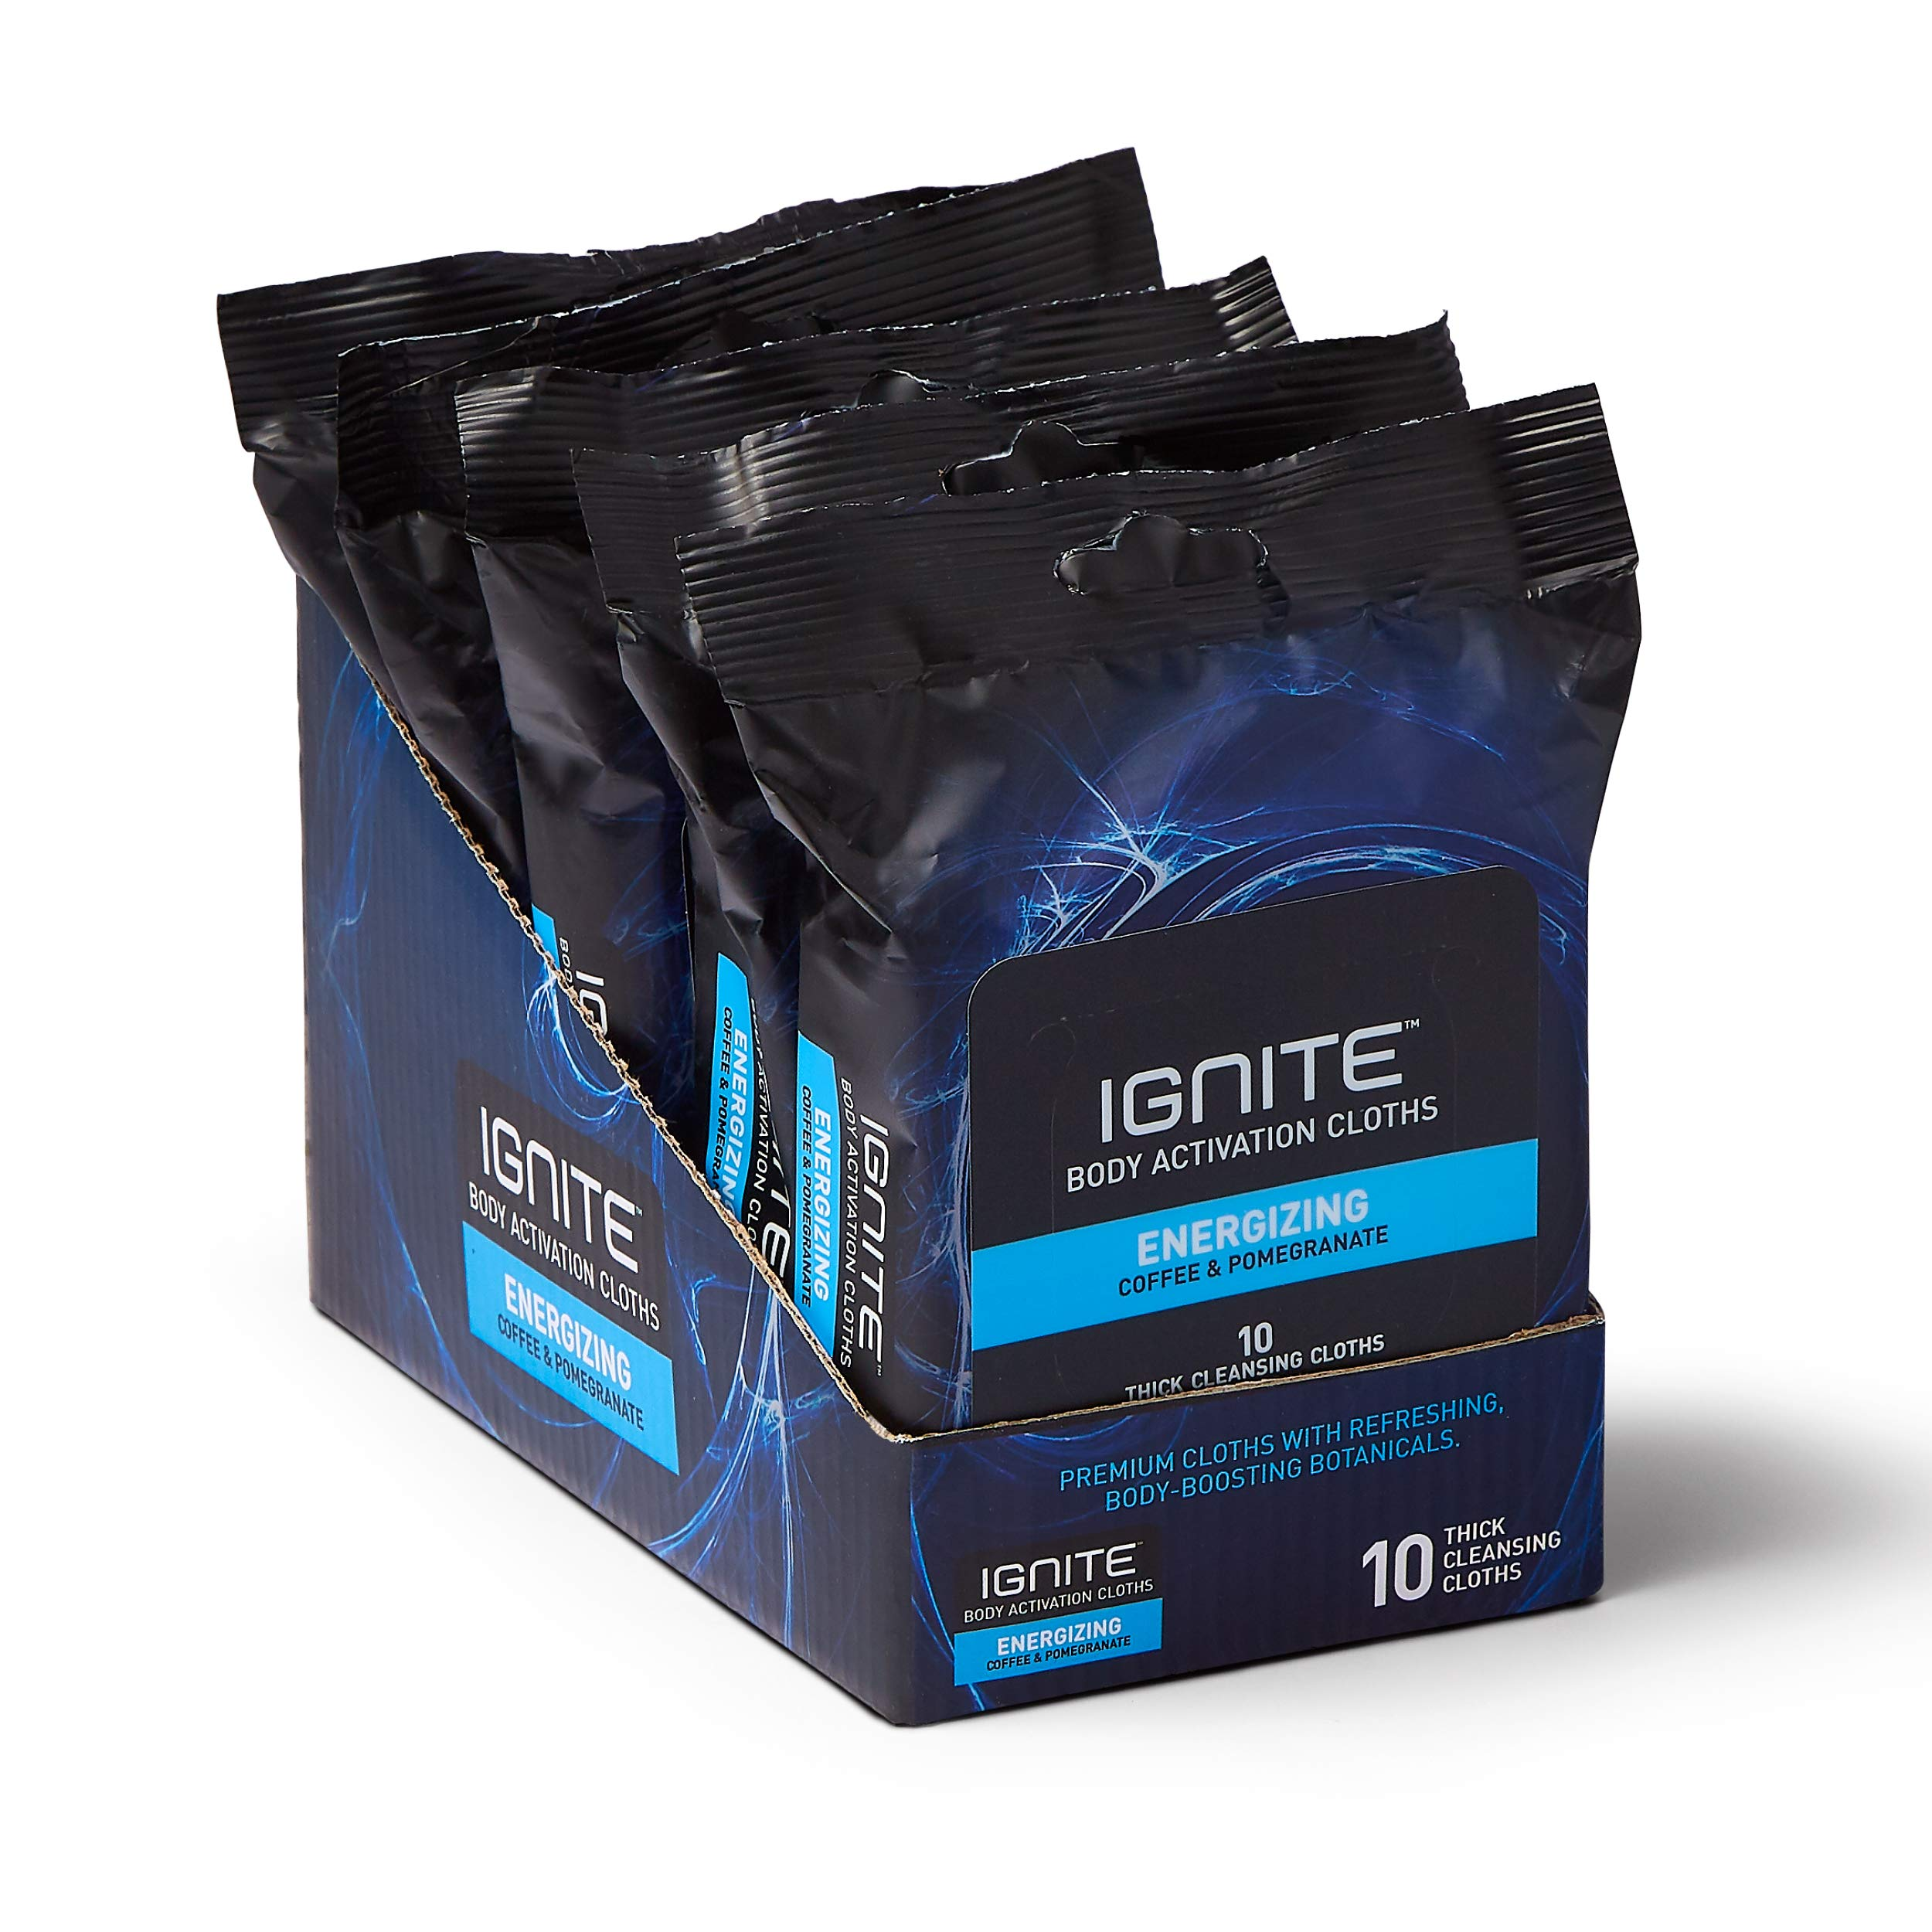 Medline Ignite Mens Body Wipes, Shower Wipes with Bold Energizing Scent, 5 Packs of 10 Wipes, Great for After Gym Wipes, Camping Wipes, Travel Wipes, Extra Thick 8 x 8 inch Wipes, IGNITE001Z